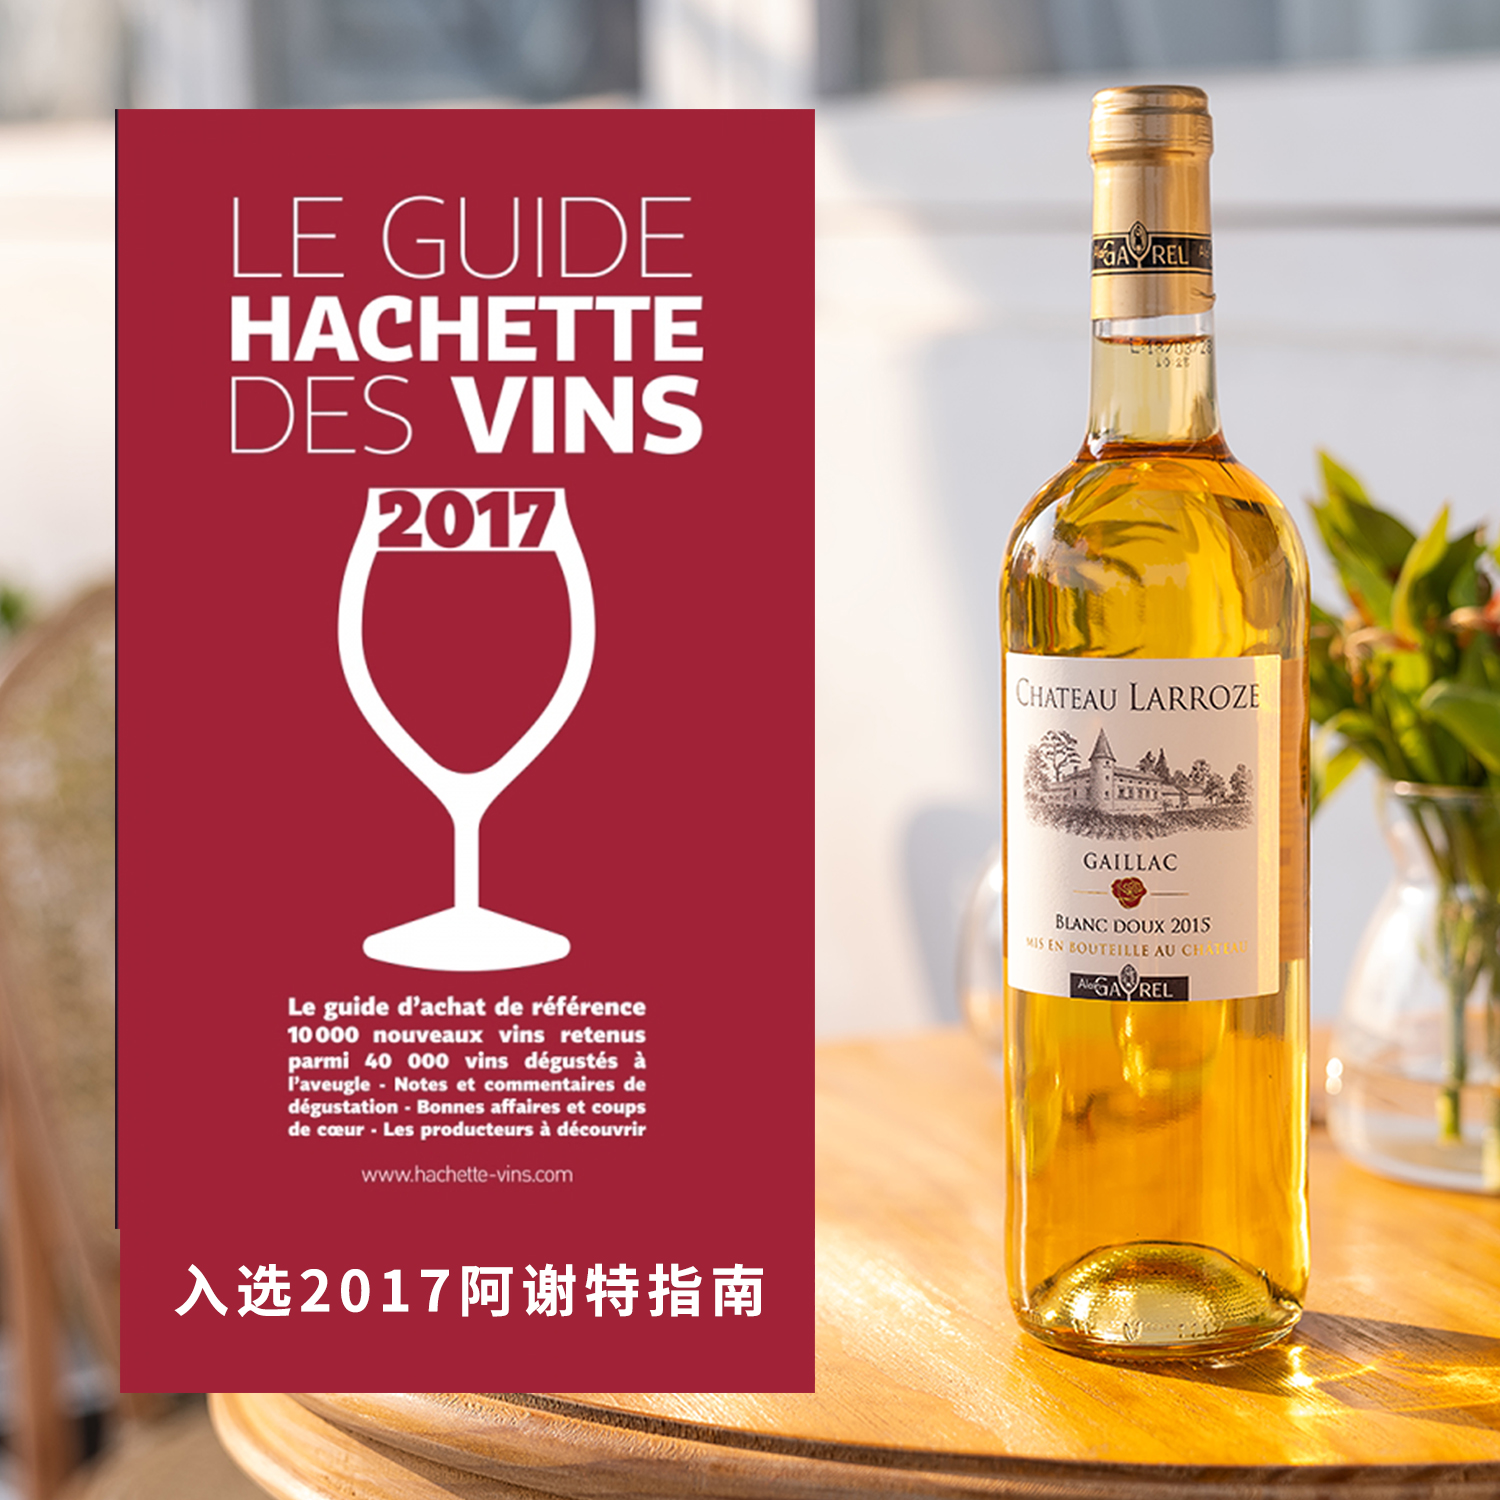 Ladys slightly drunk honey floral sweet white wine imported AOC liqueur in French original bottle